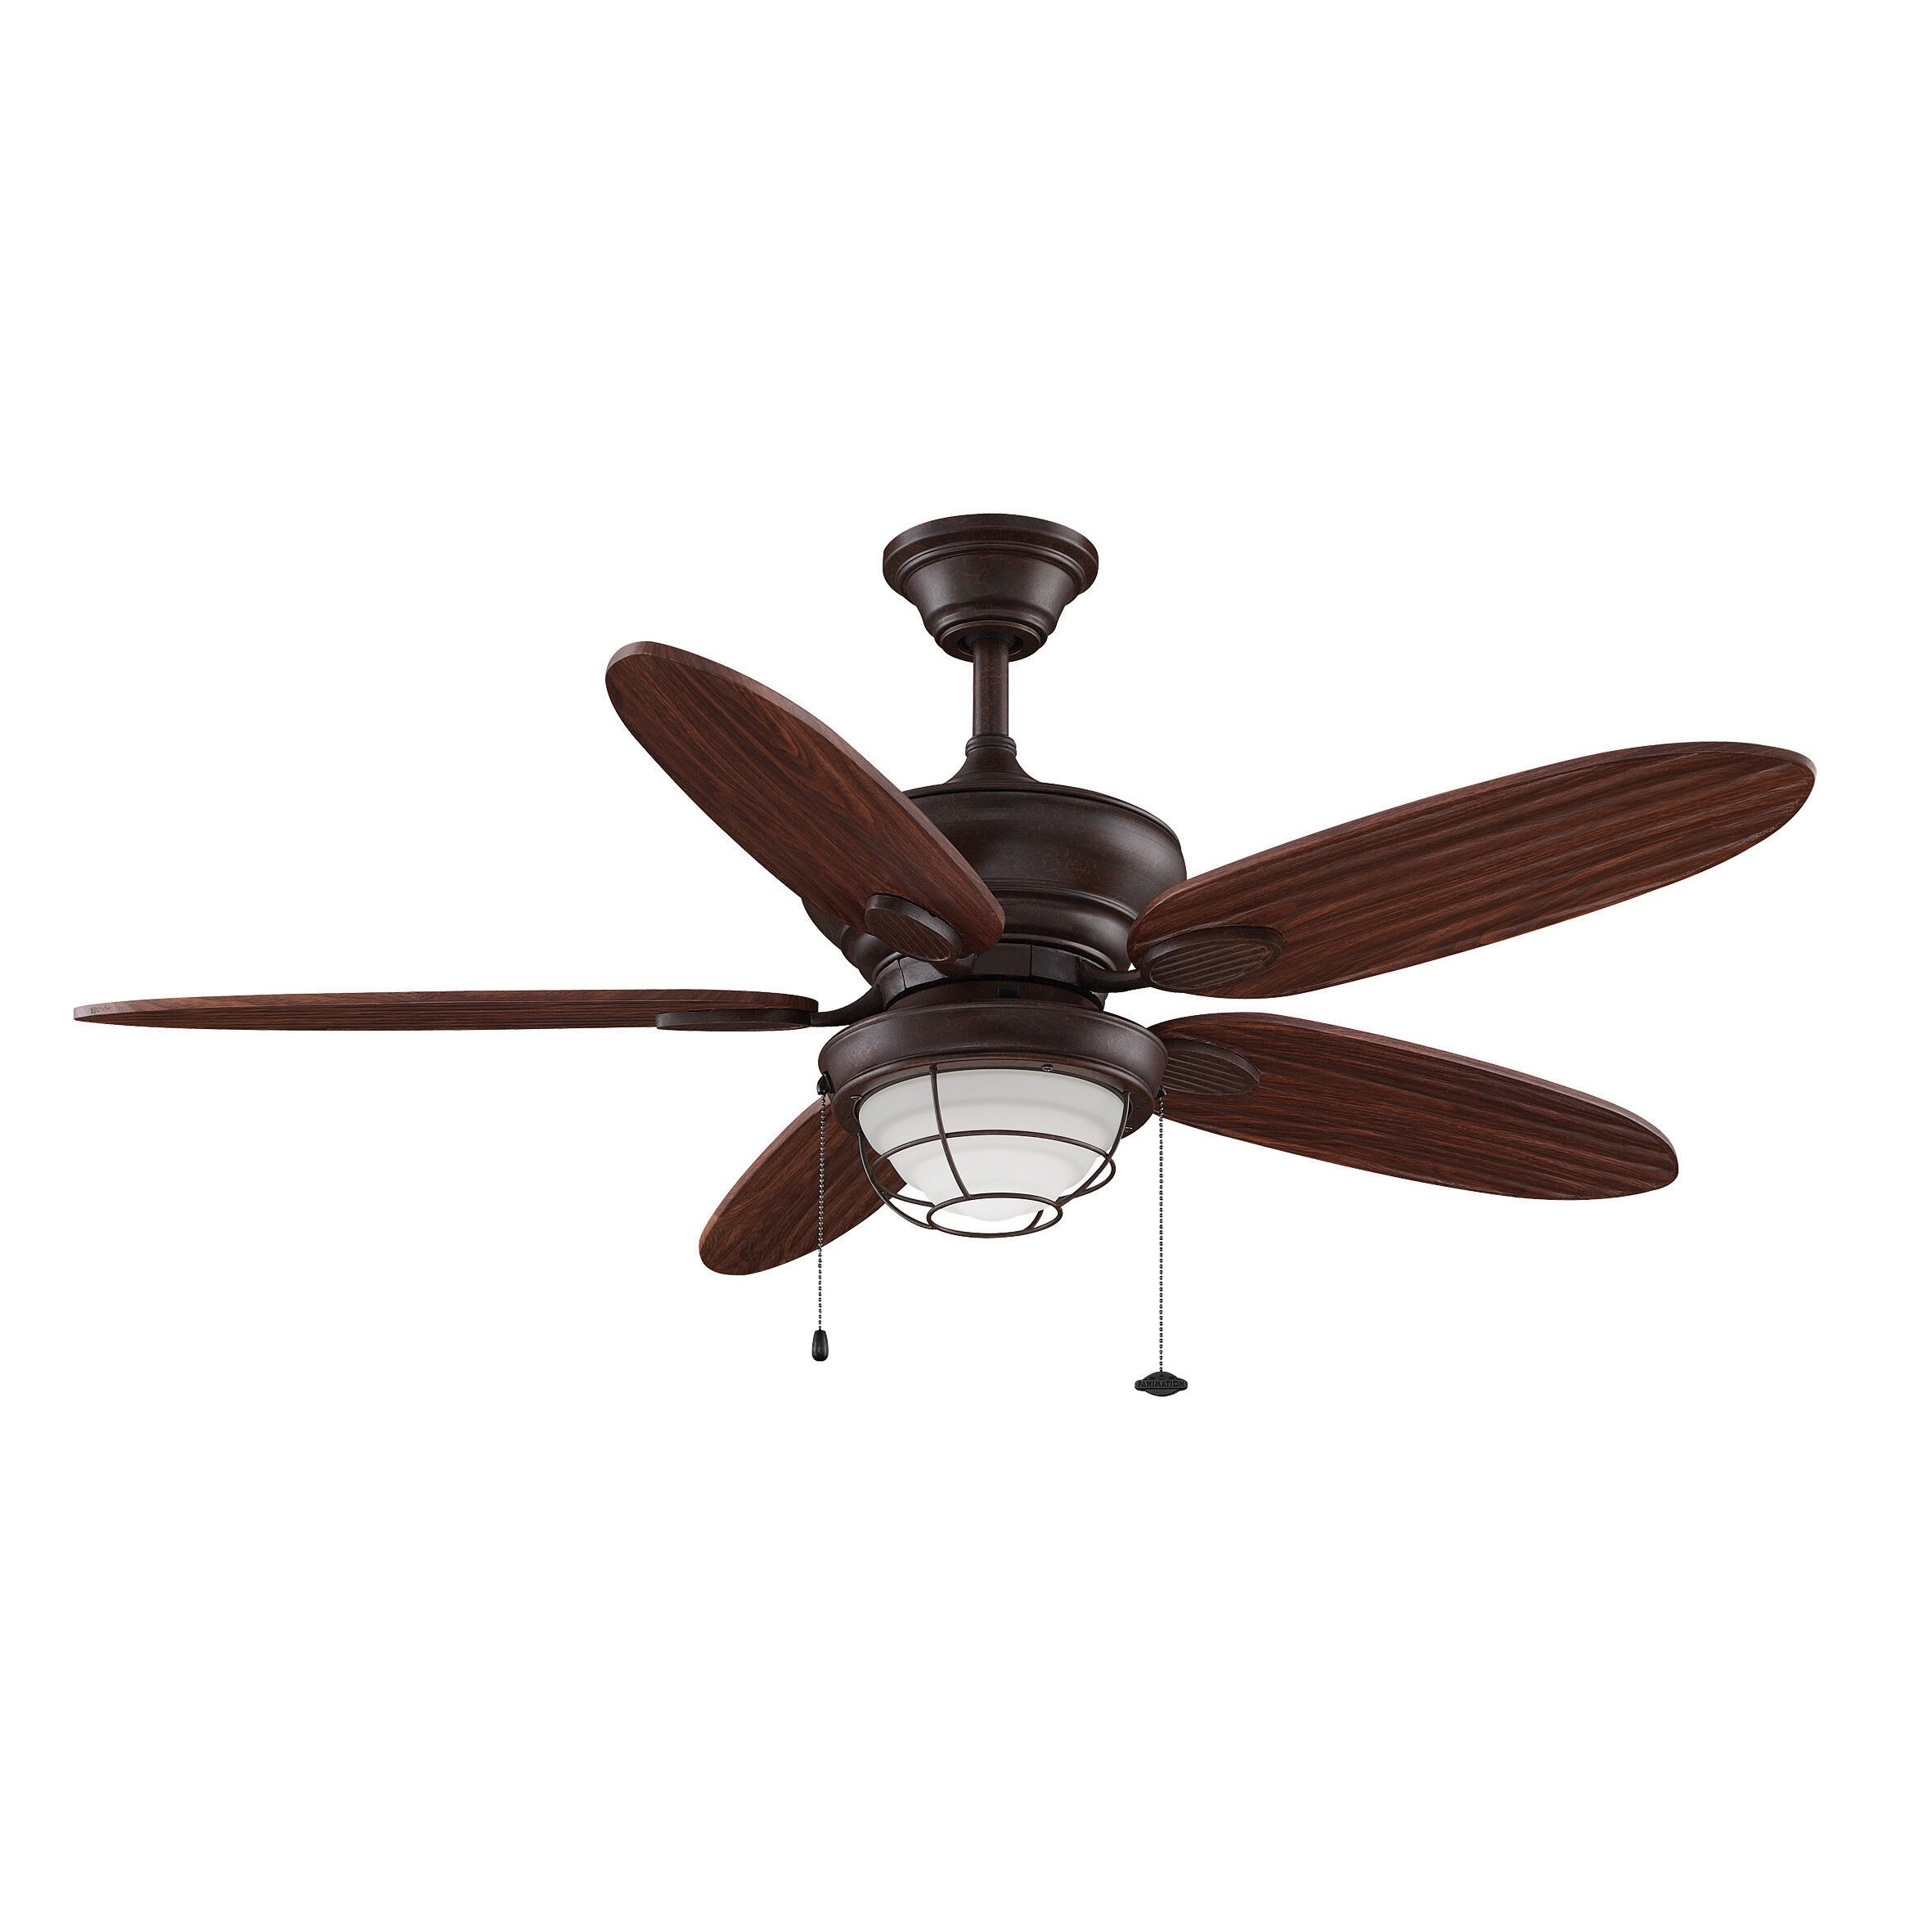 Outdoor ceiling fan with light and remote - 52 Kaya 5 Blade Ceiling Fan